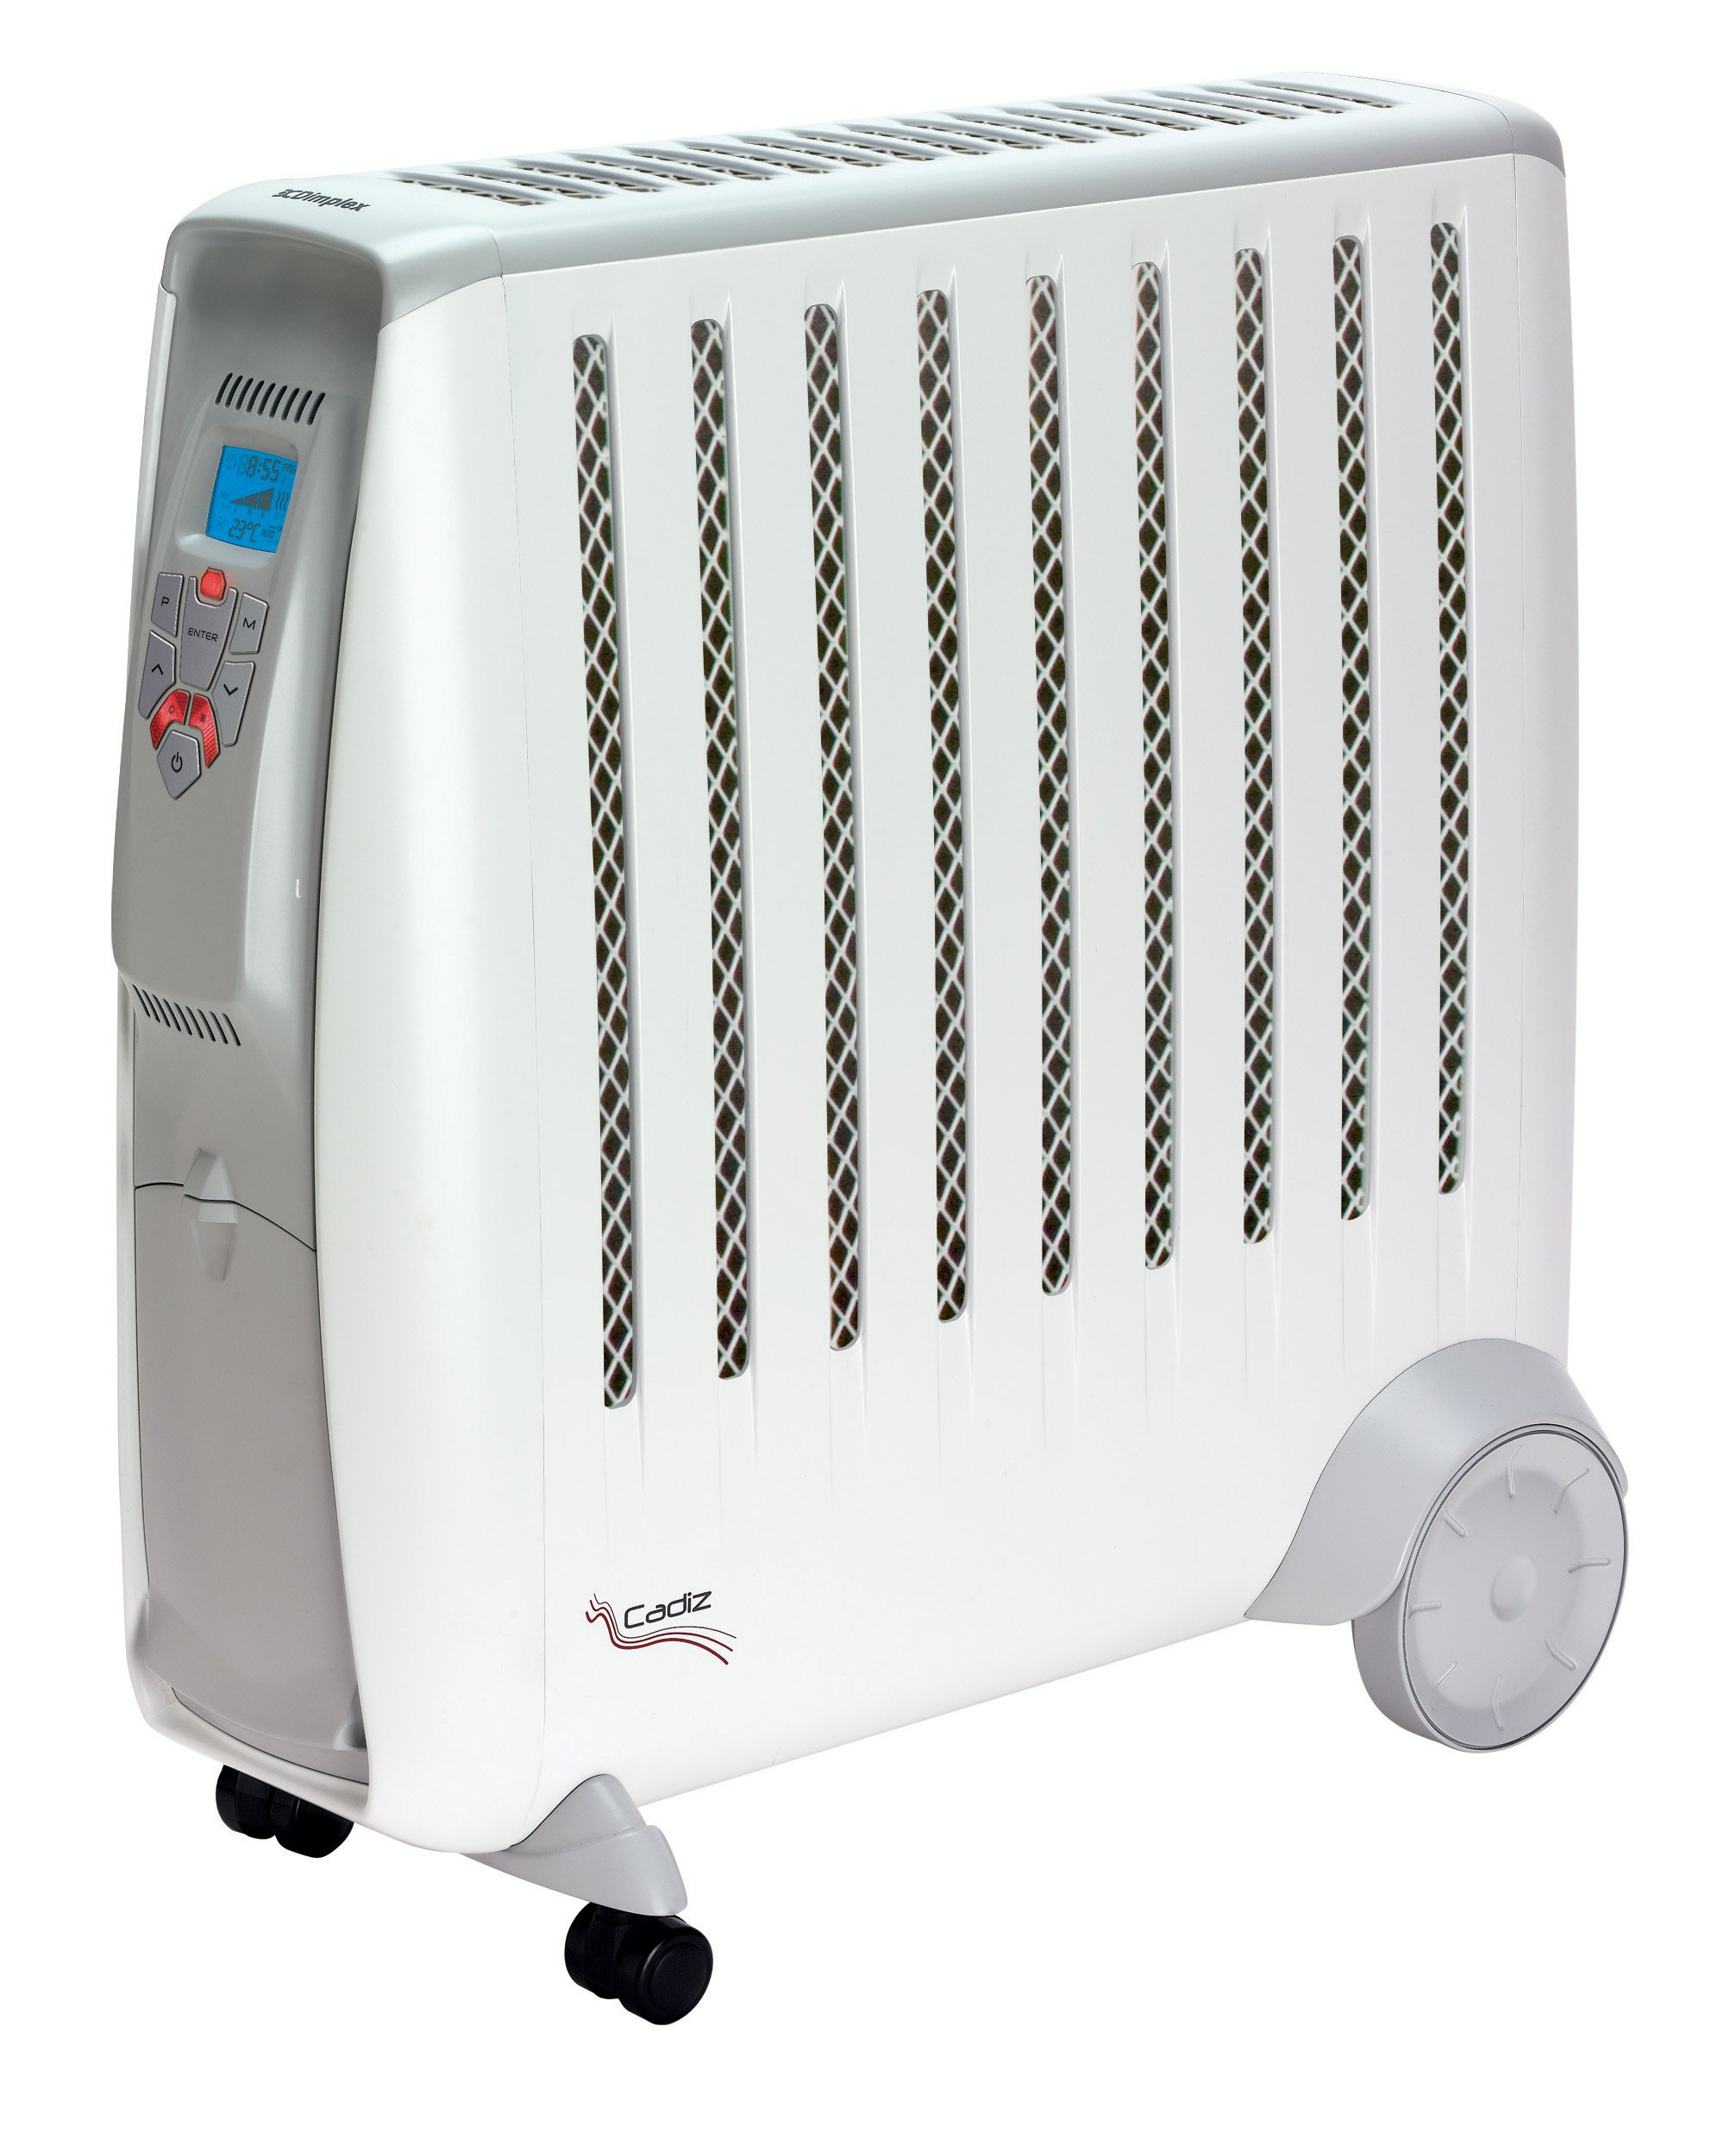 81q37ppXUsL - Dimplex CDE2ECC Cadiz 2kW Portable Oil Free Electric Radiator with 2 Heat Settings Adjustable Thermostat and Climate Control, Plastic, 2000 W, White